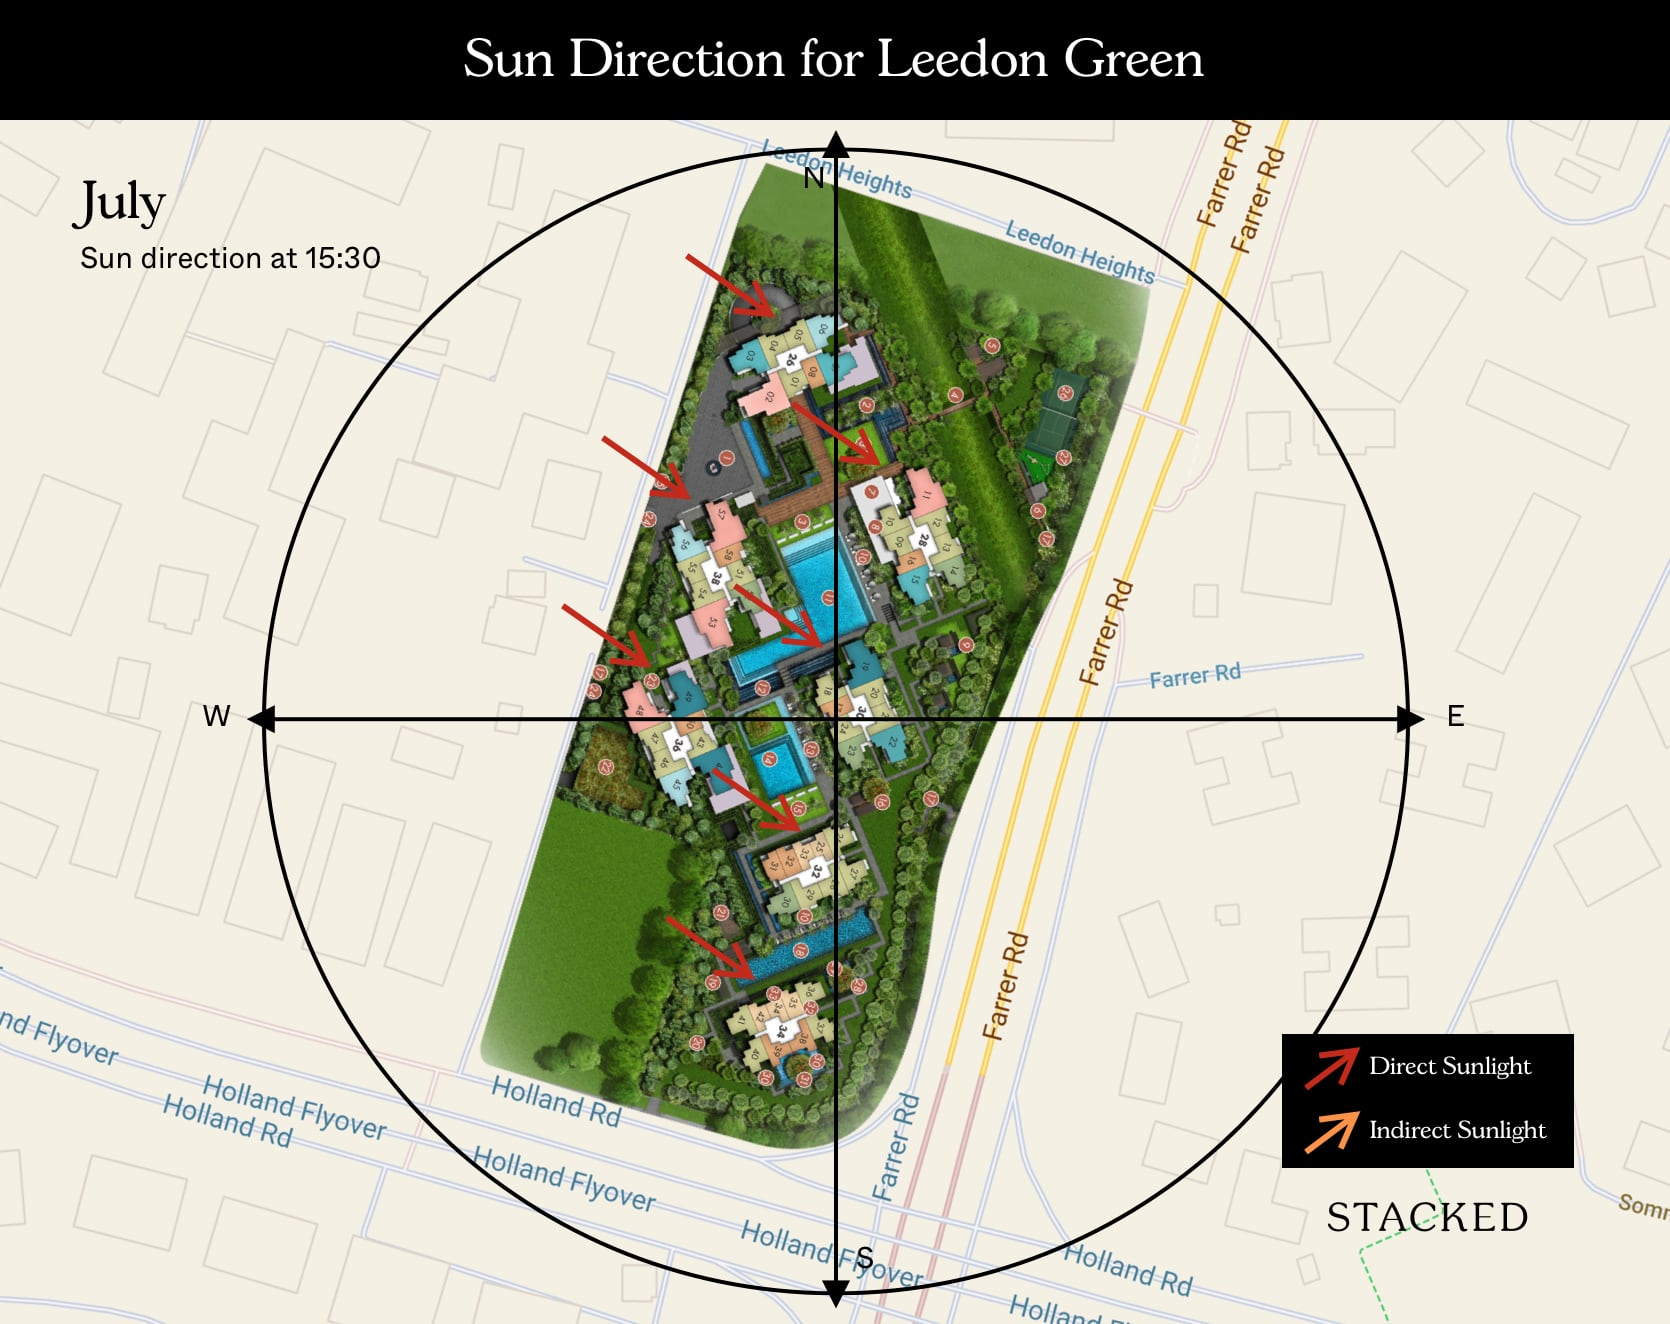 Leedon Green Sun Direction July